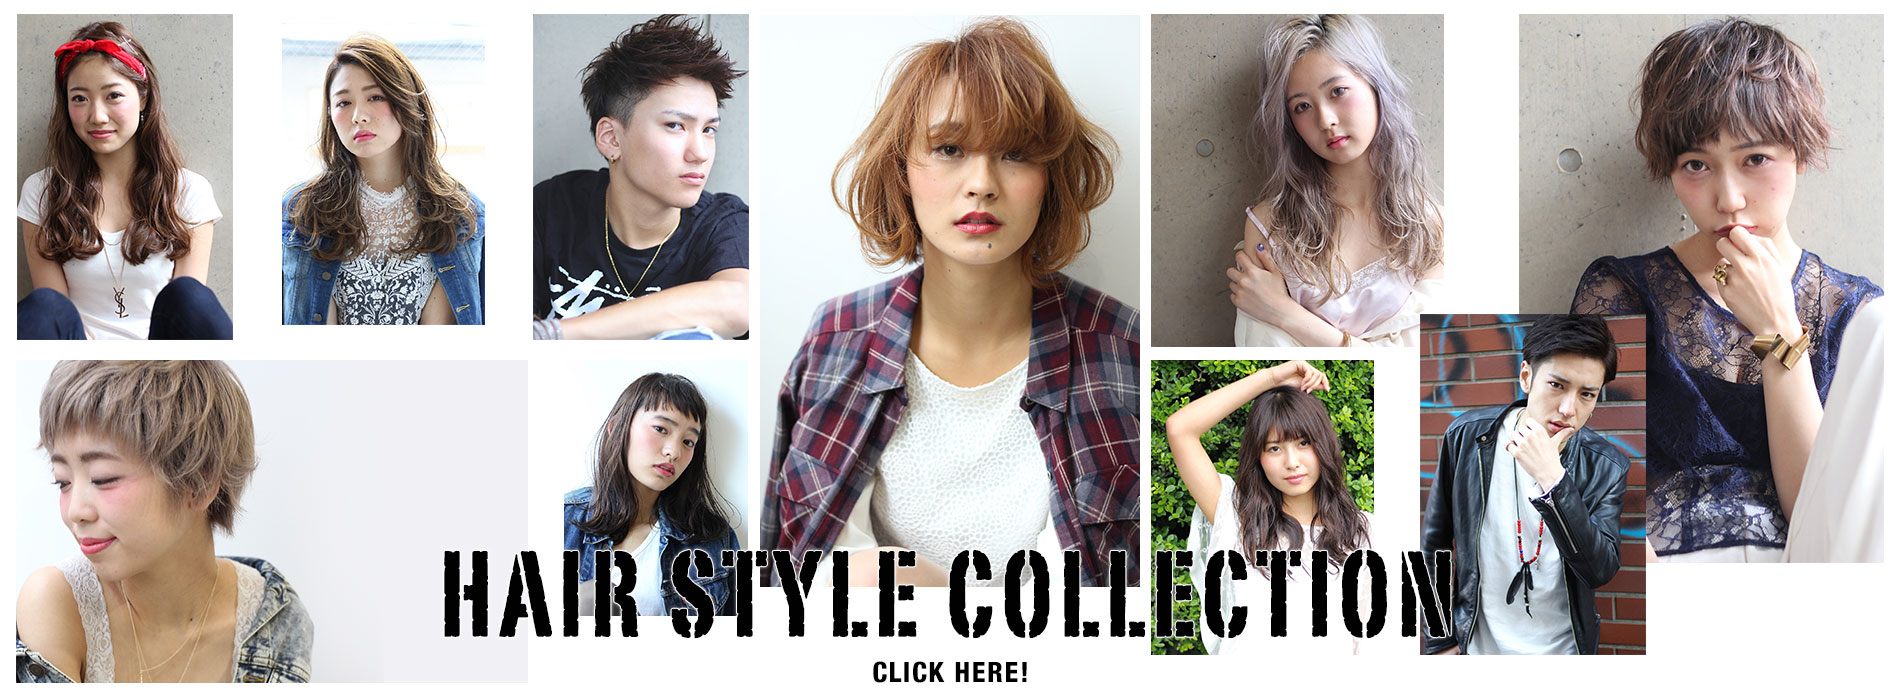 HAIR STYLE COLLECTION